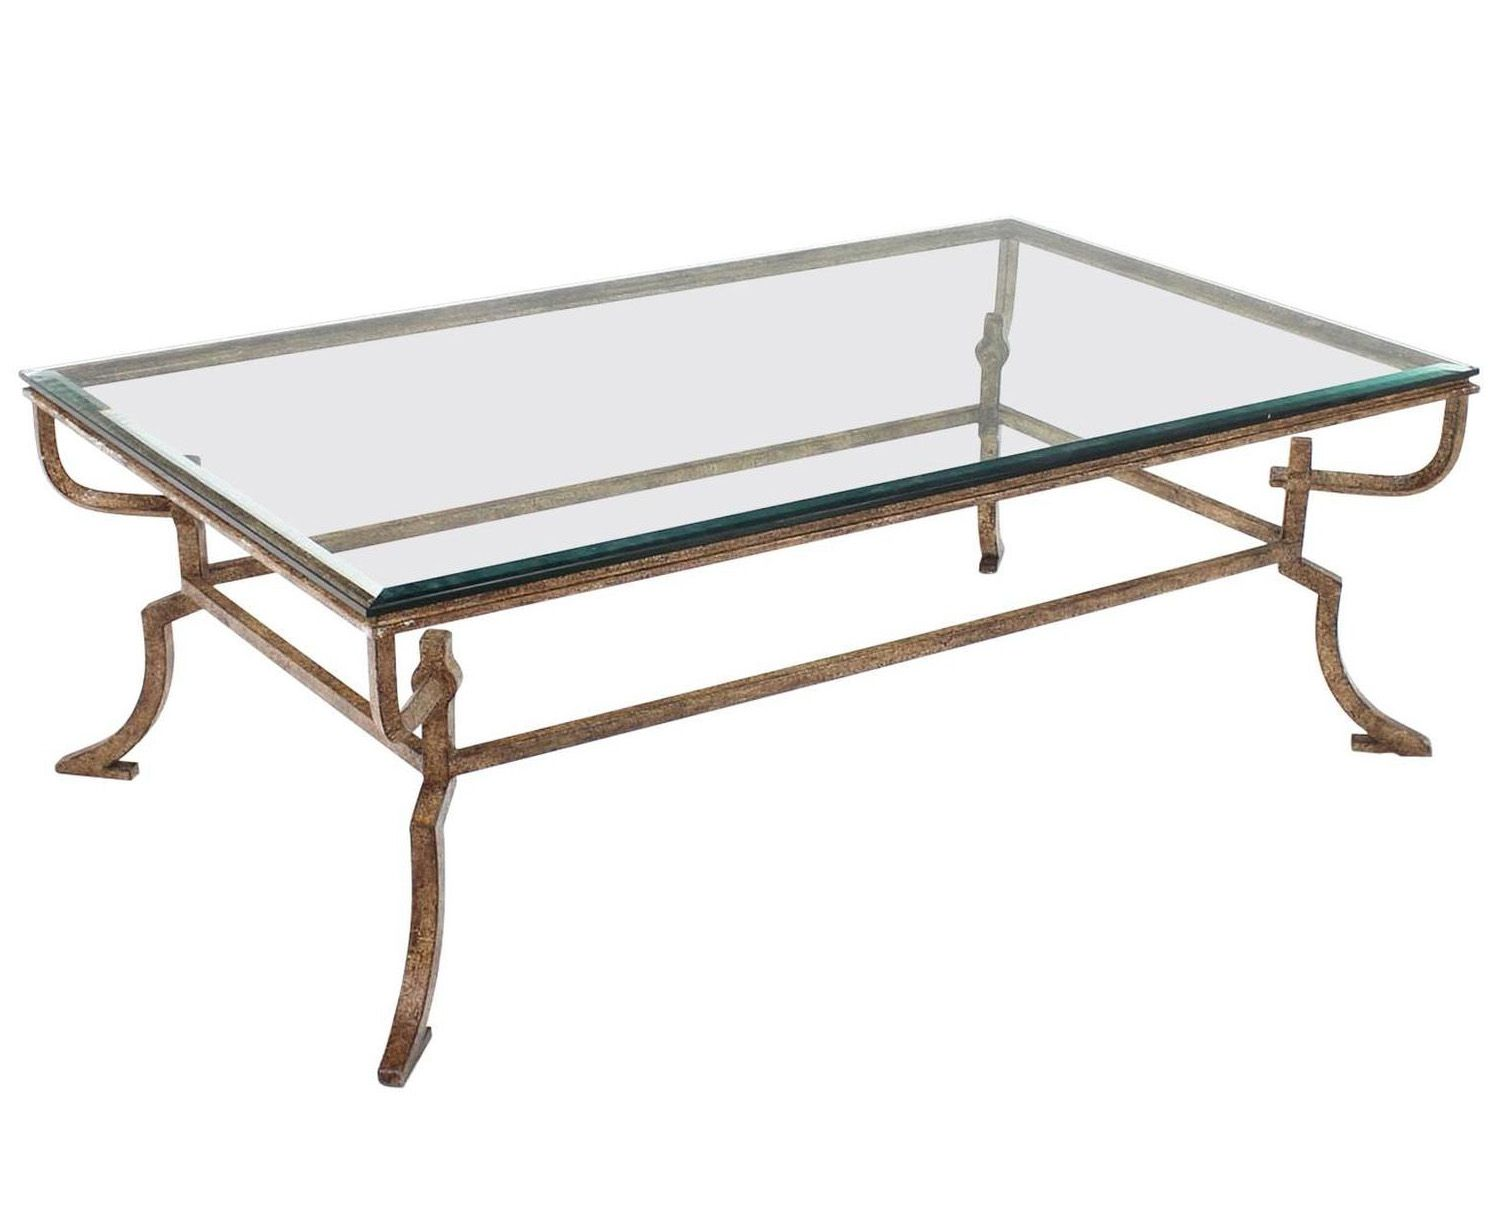 21+ Wrought iron and glass coffee table inspirations